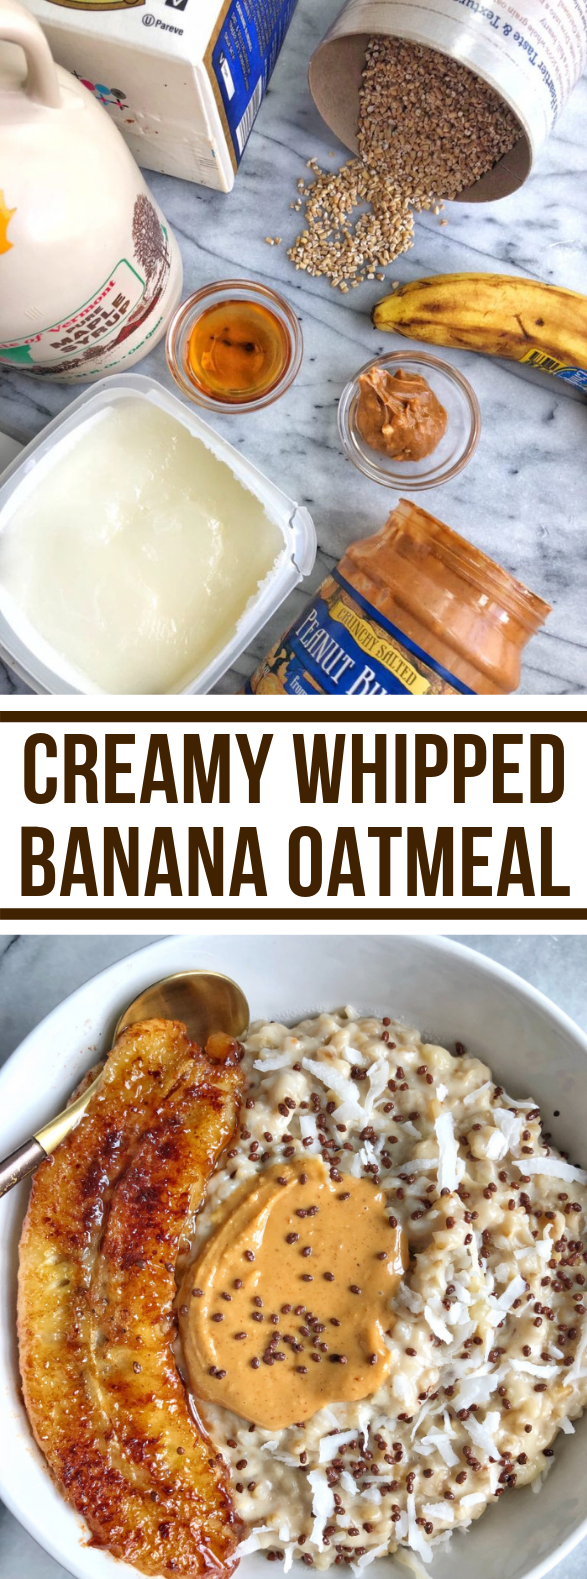 Creamy Whipped Banana Oatmeal #healthy #glutenfree